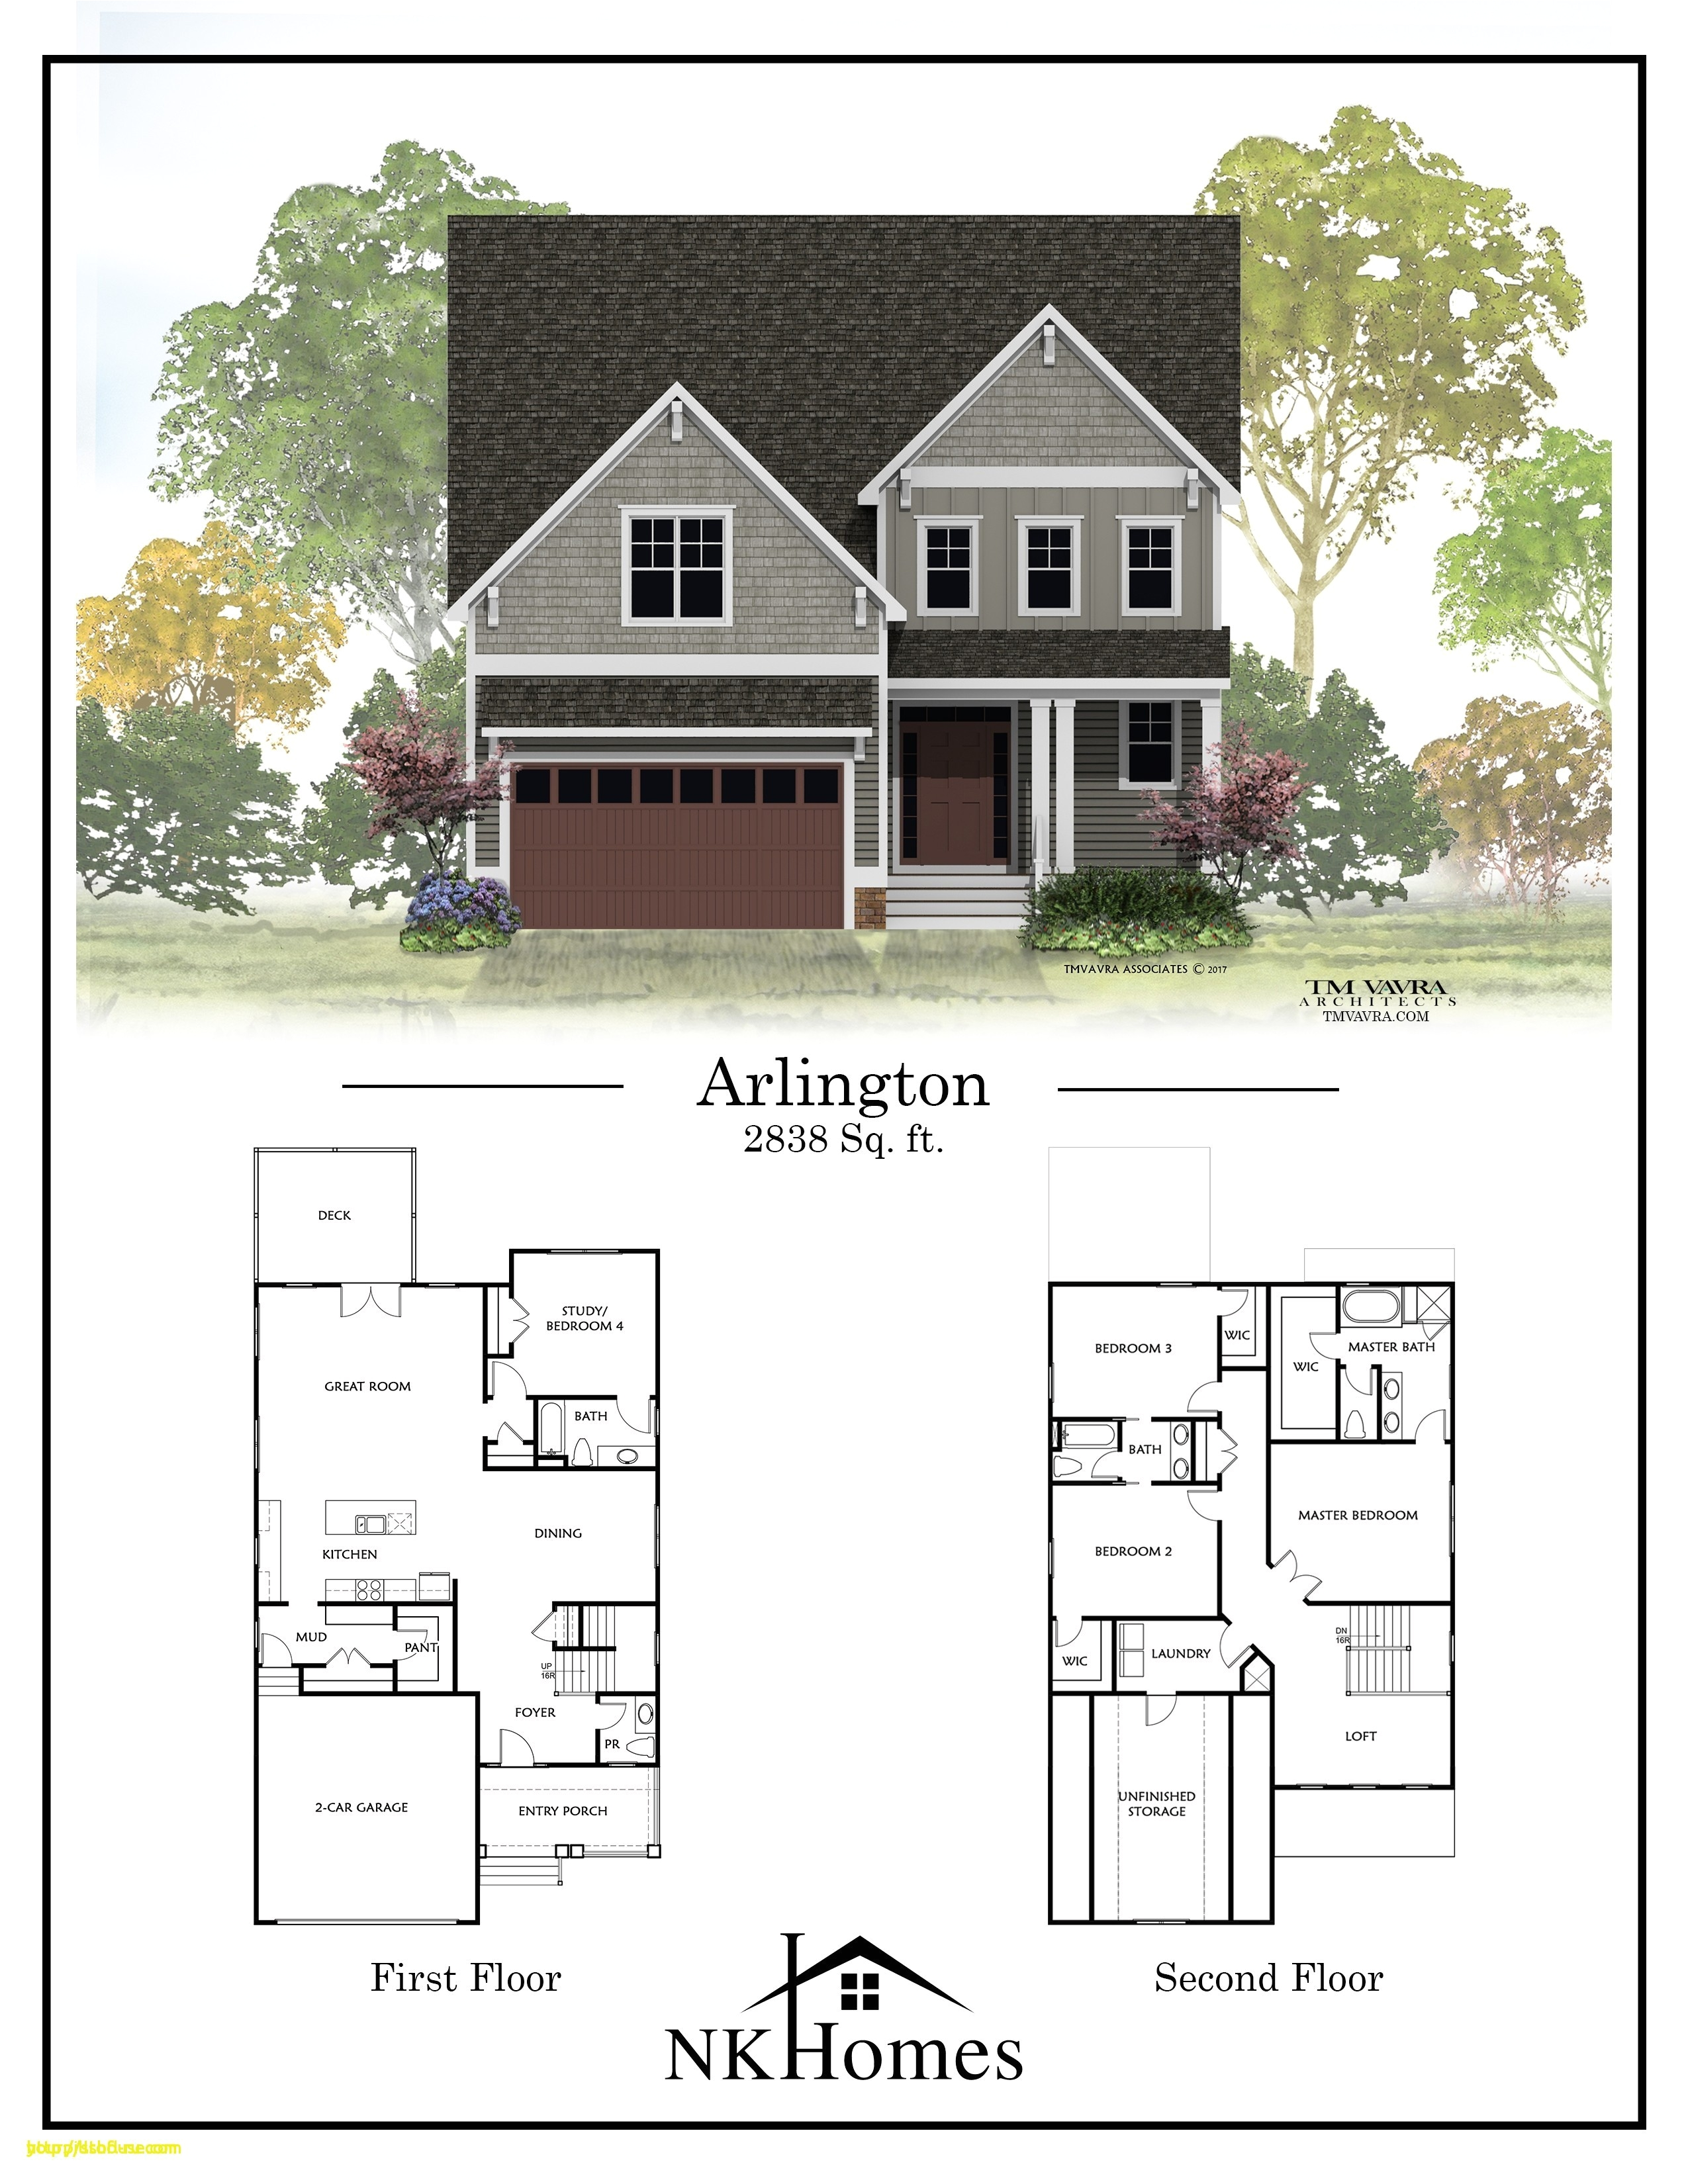 beach cottage house plans 3 story house plans roof deck fresh index wiki 0 0d 3